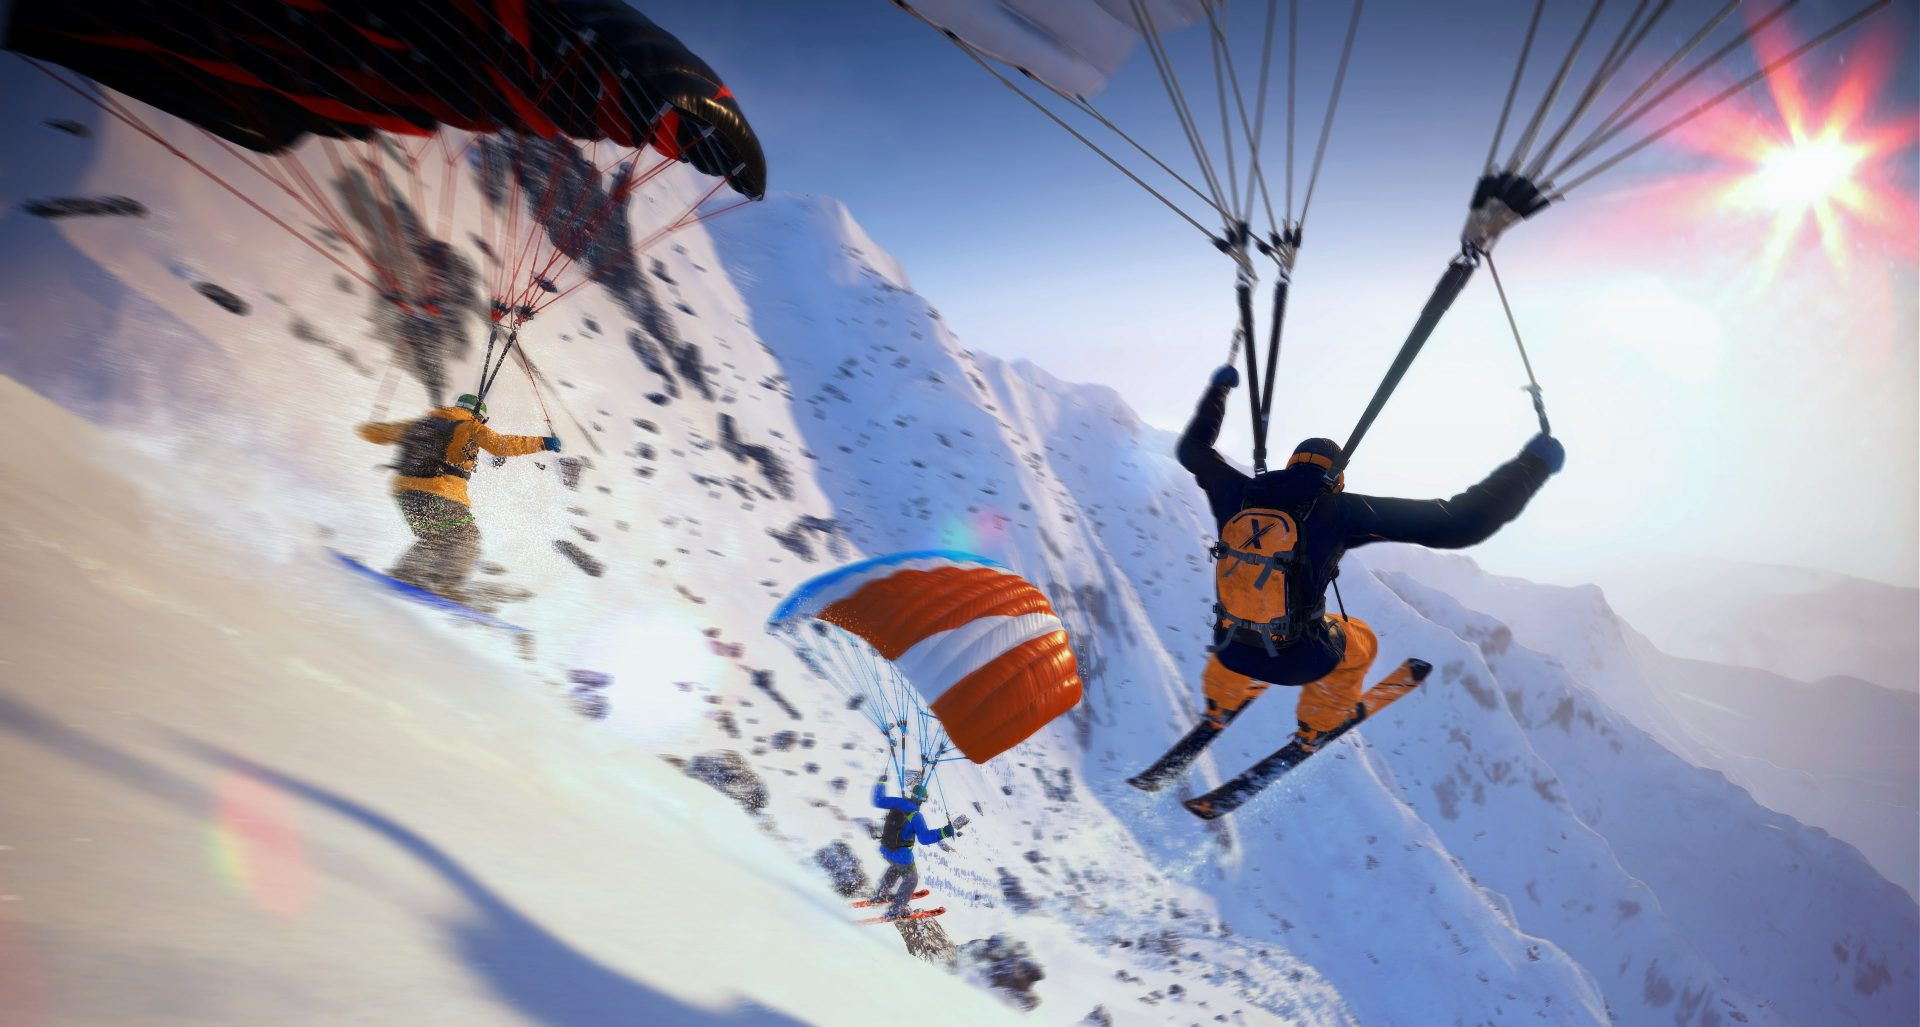 Return To The Slopes With More Content For Steep